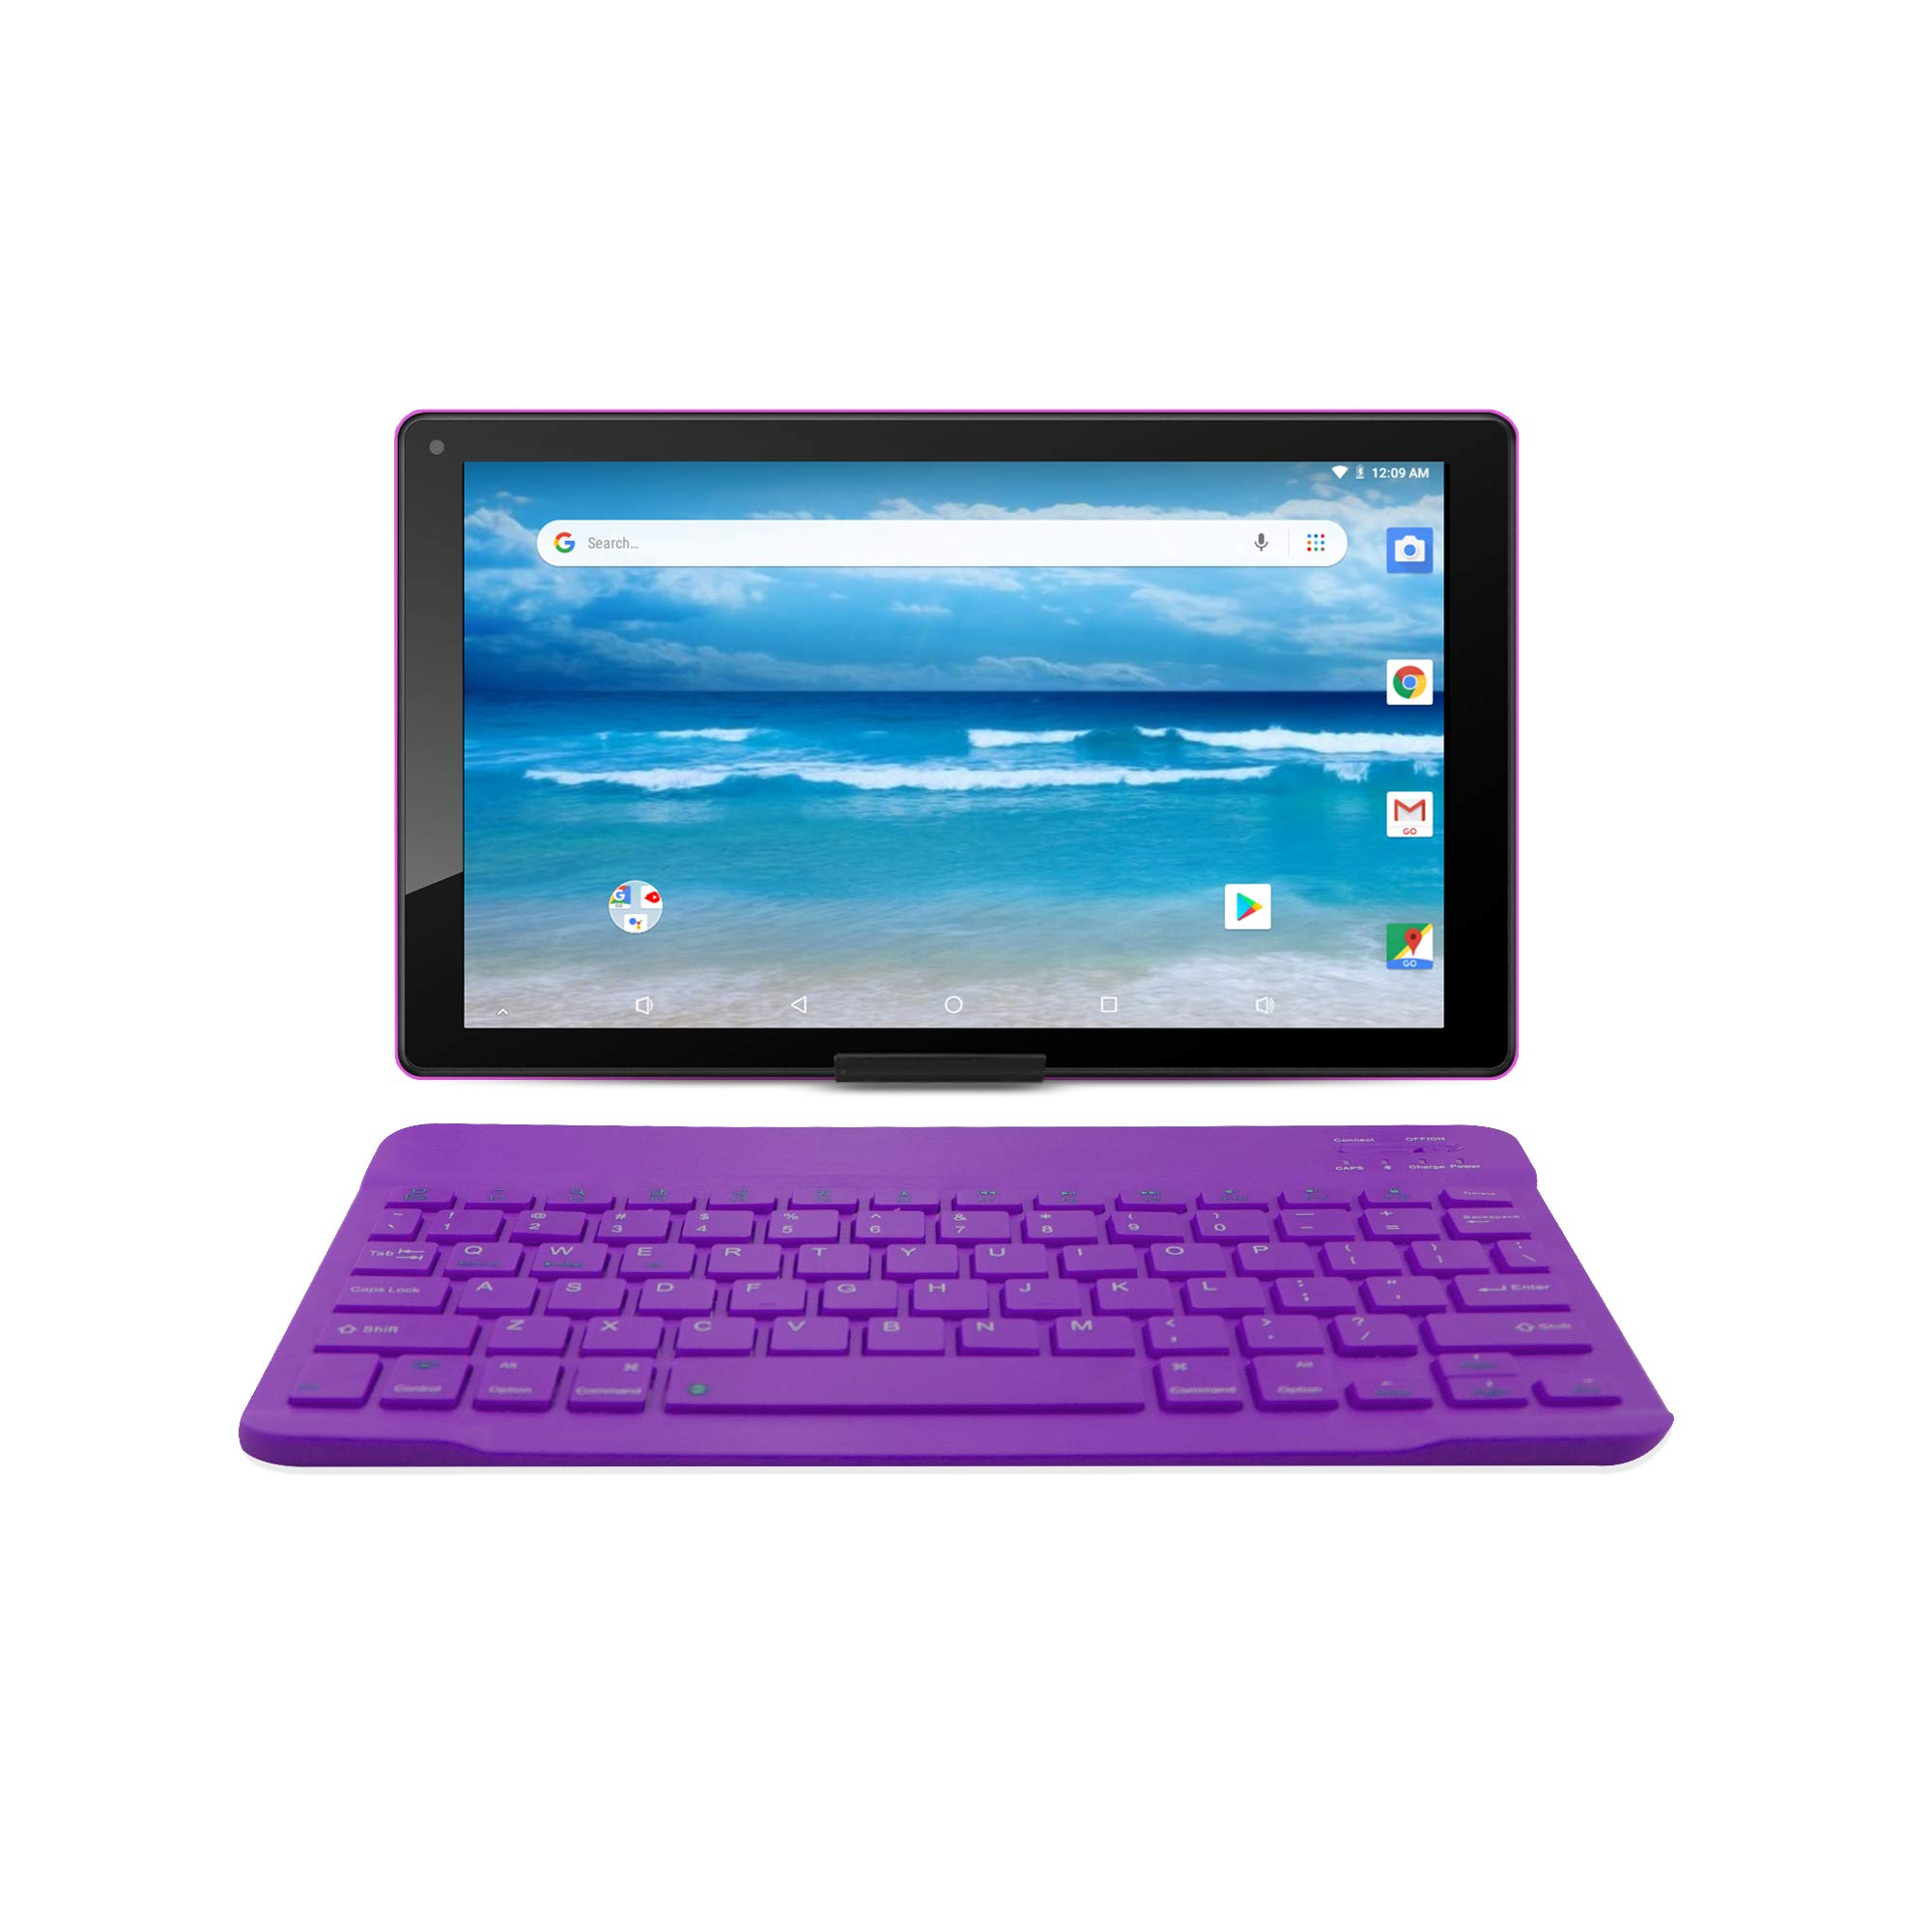 10.1 inch Android 8.1 Oreo HD Tablet by Azpen, Google Certified Tablet, Bonus- Bluetooth Keyboard, Case and Stand Included (Purple)